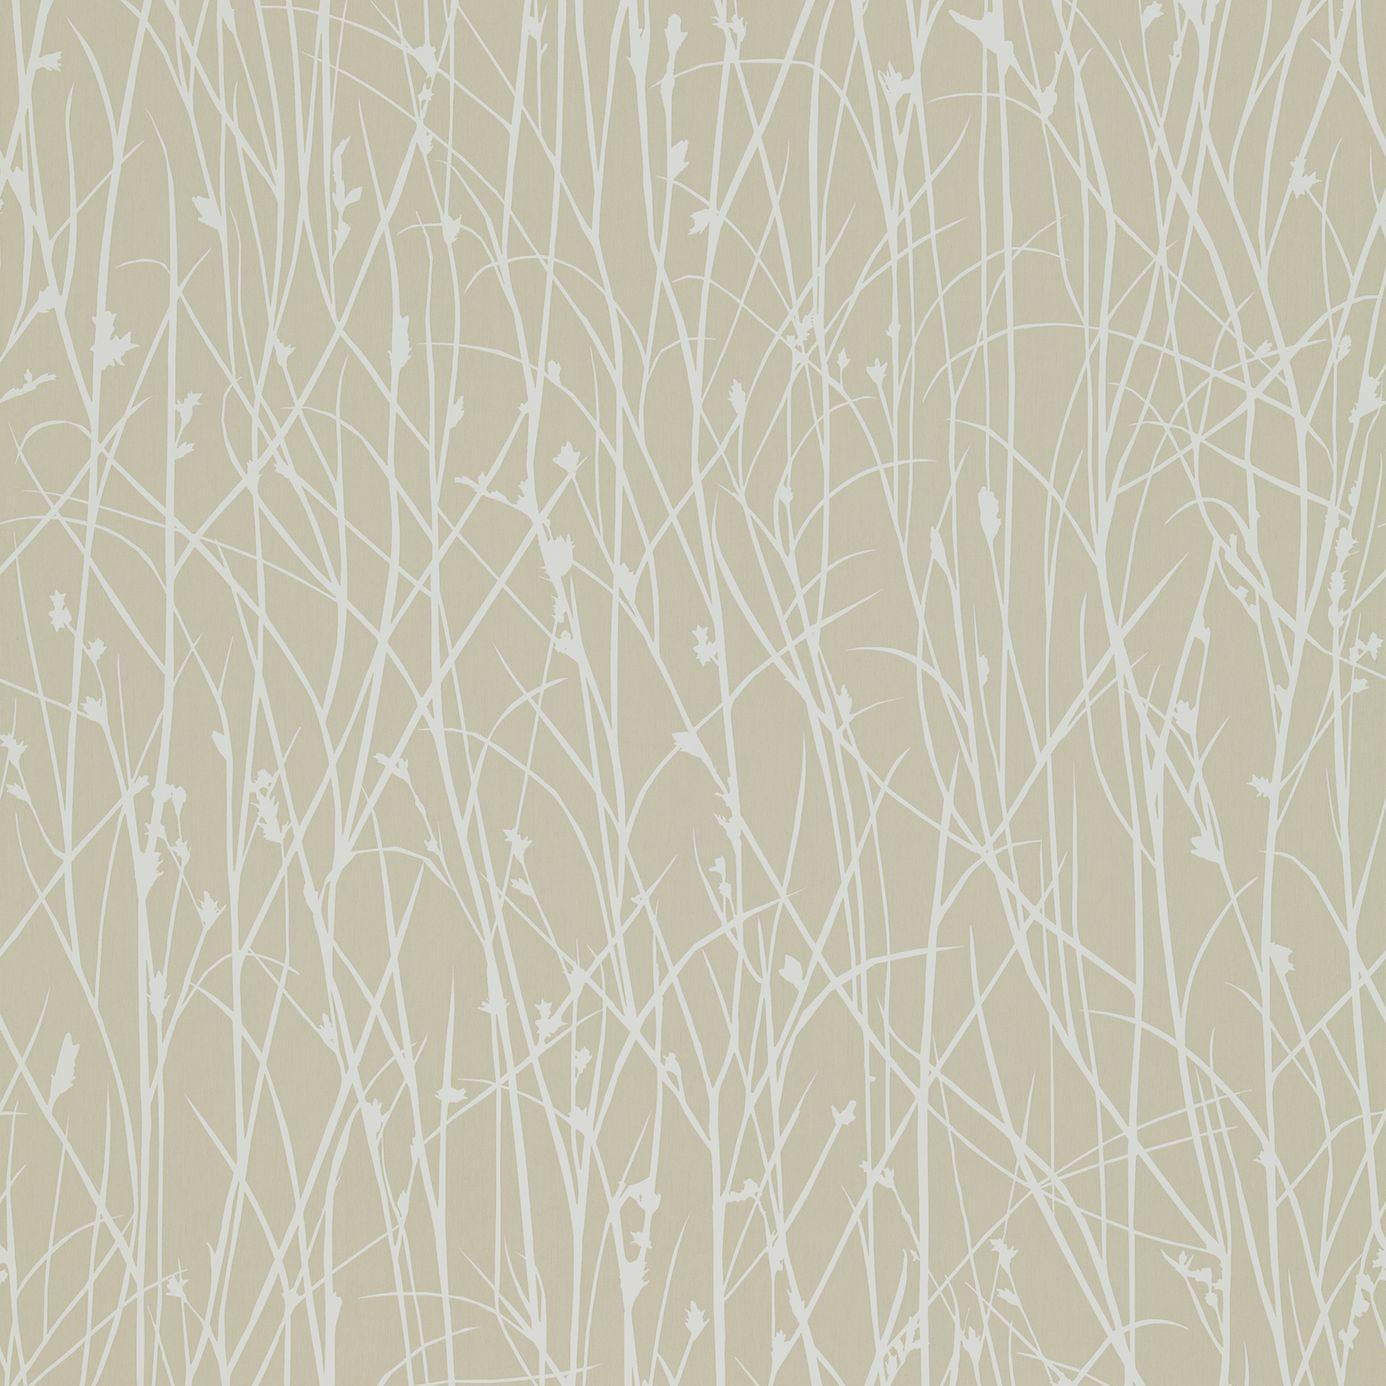 Grasses wallpaper natural white 110149 harlequin kallianthi wallpapers collection - Wall wallpaper designs ...